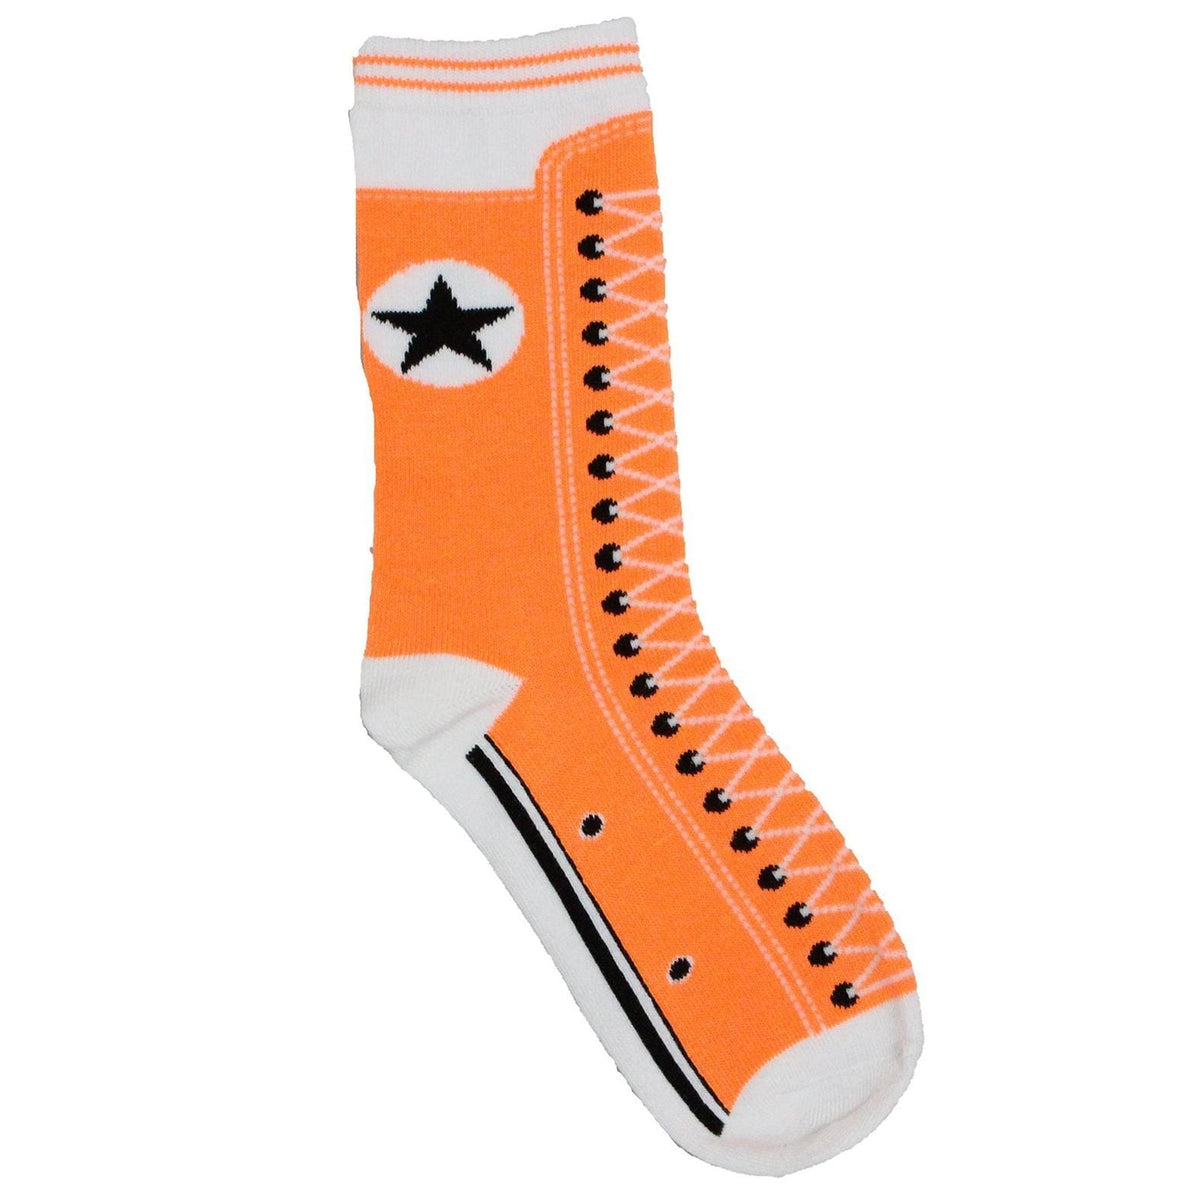 Sneaker Style Socks Women's Crew Sock Orange